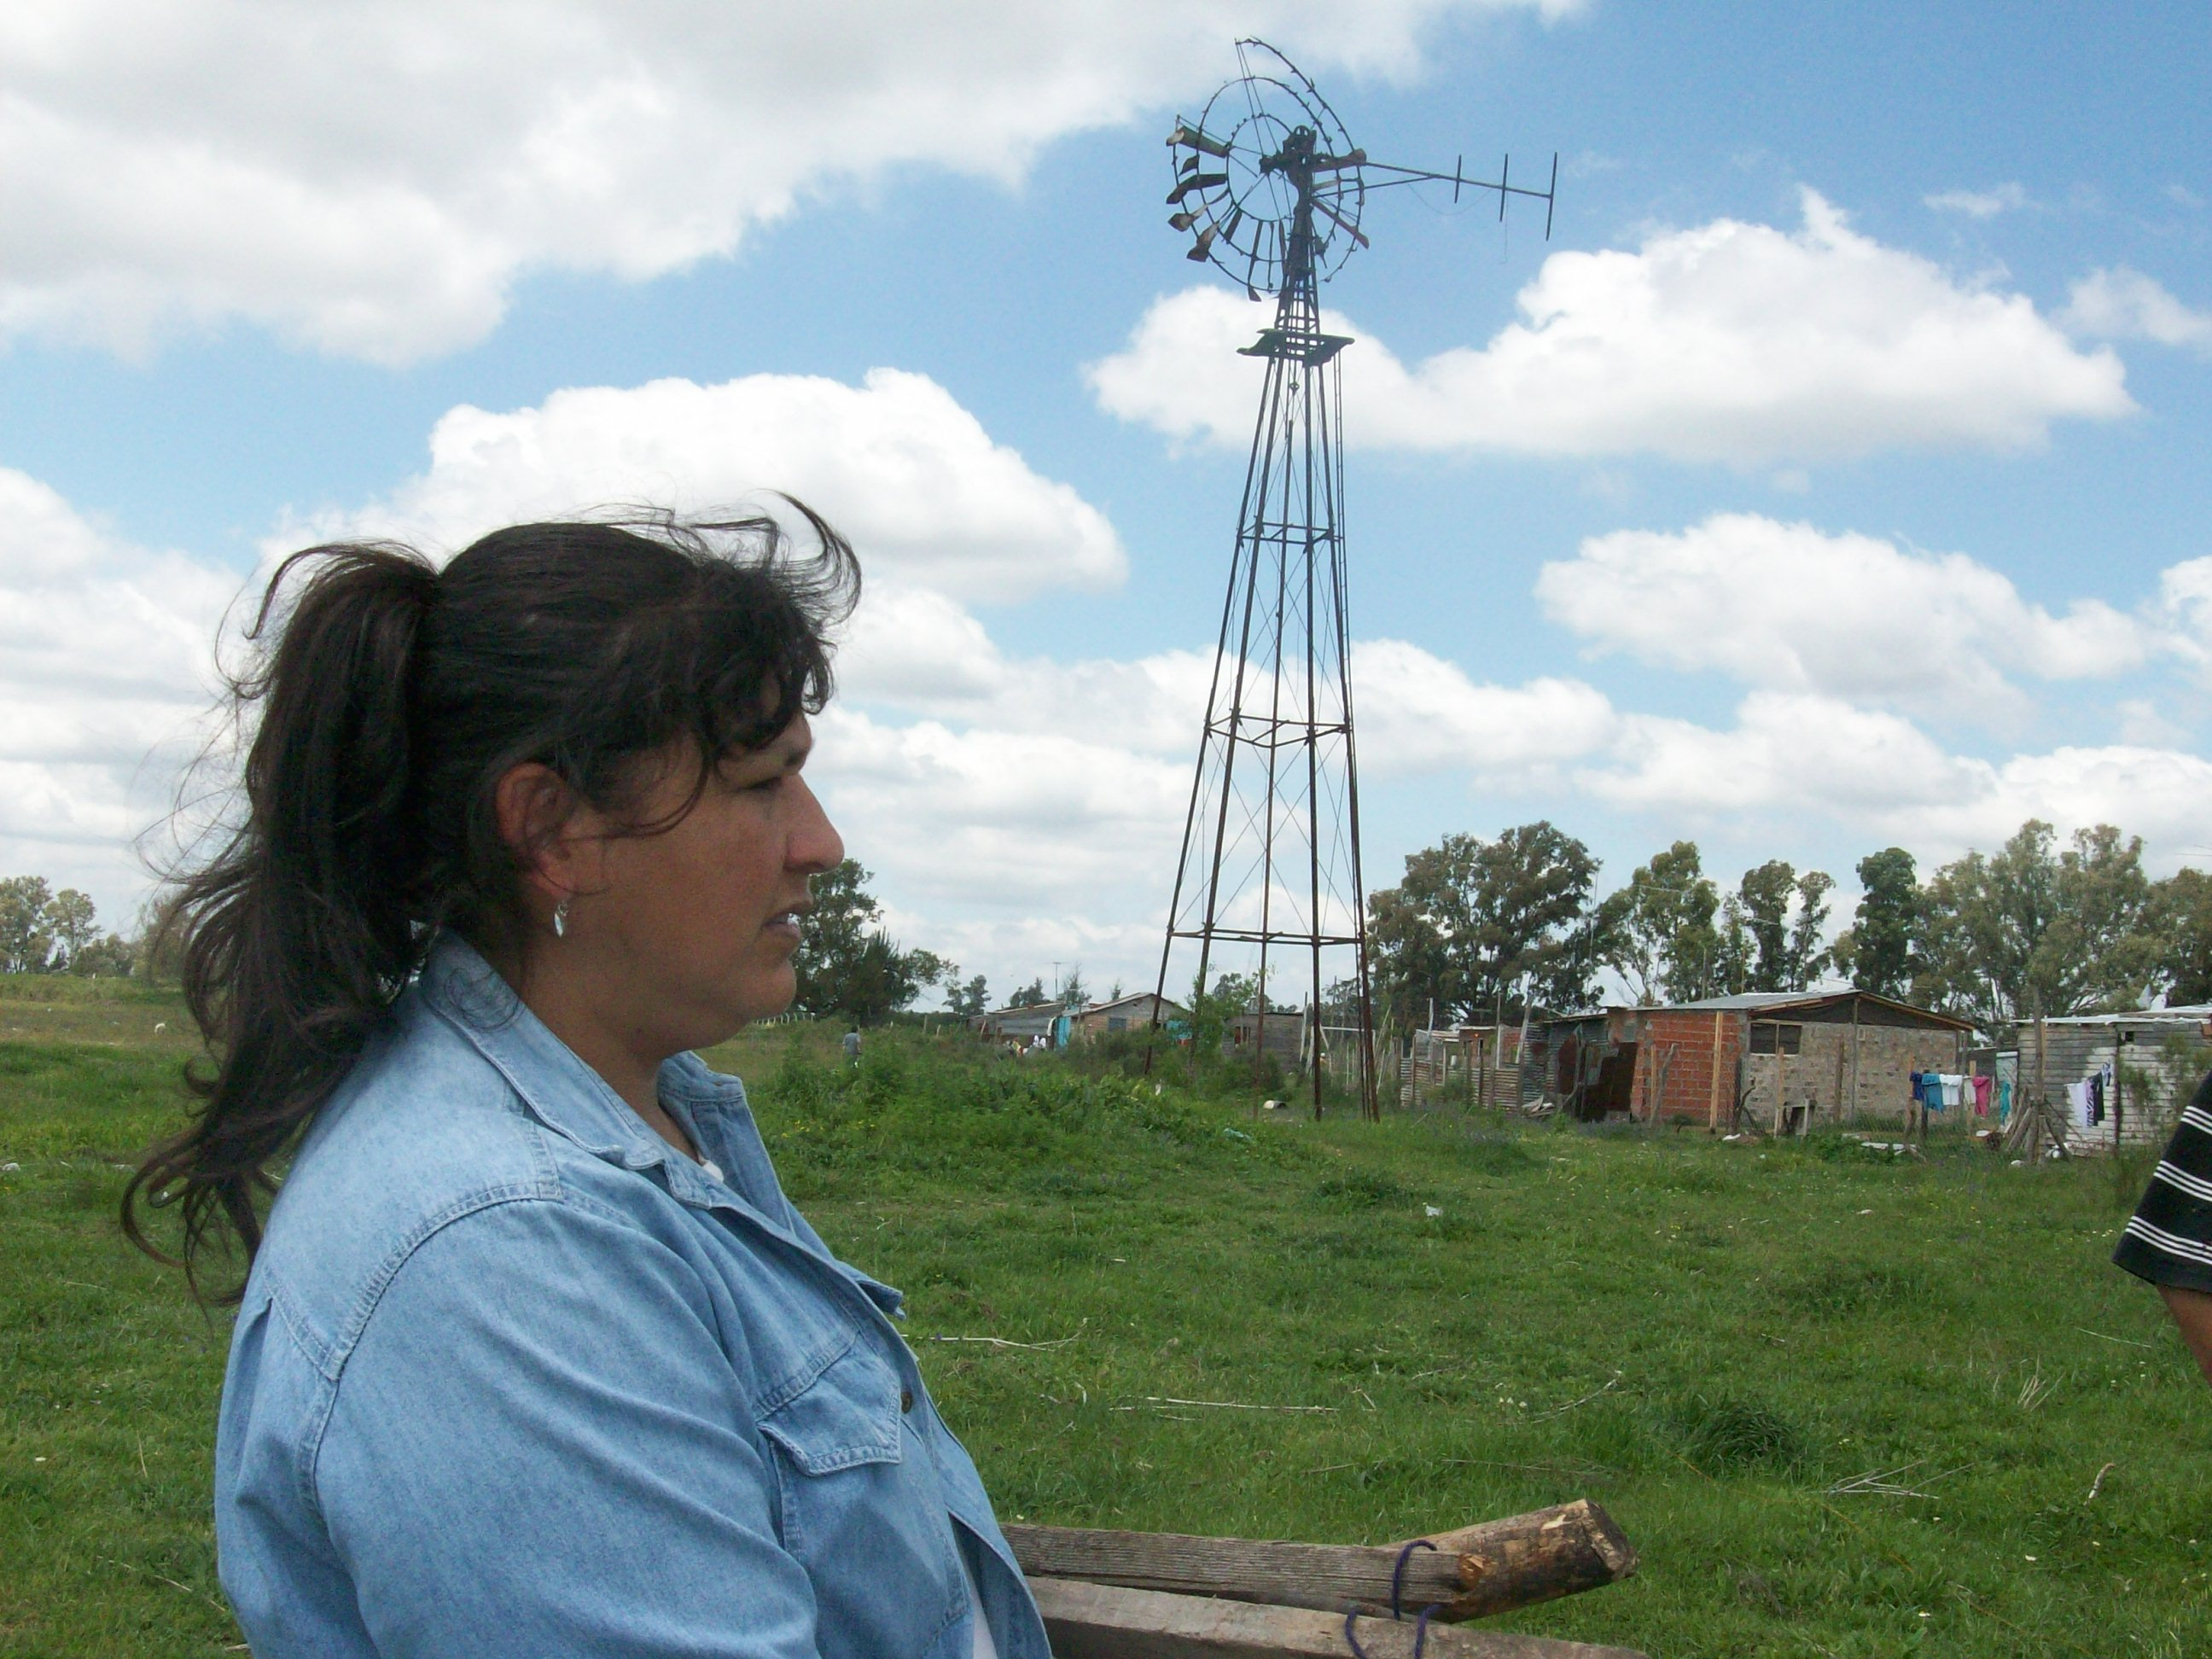 inhabitant of a precarious settlement buenos aires